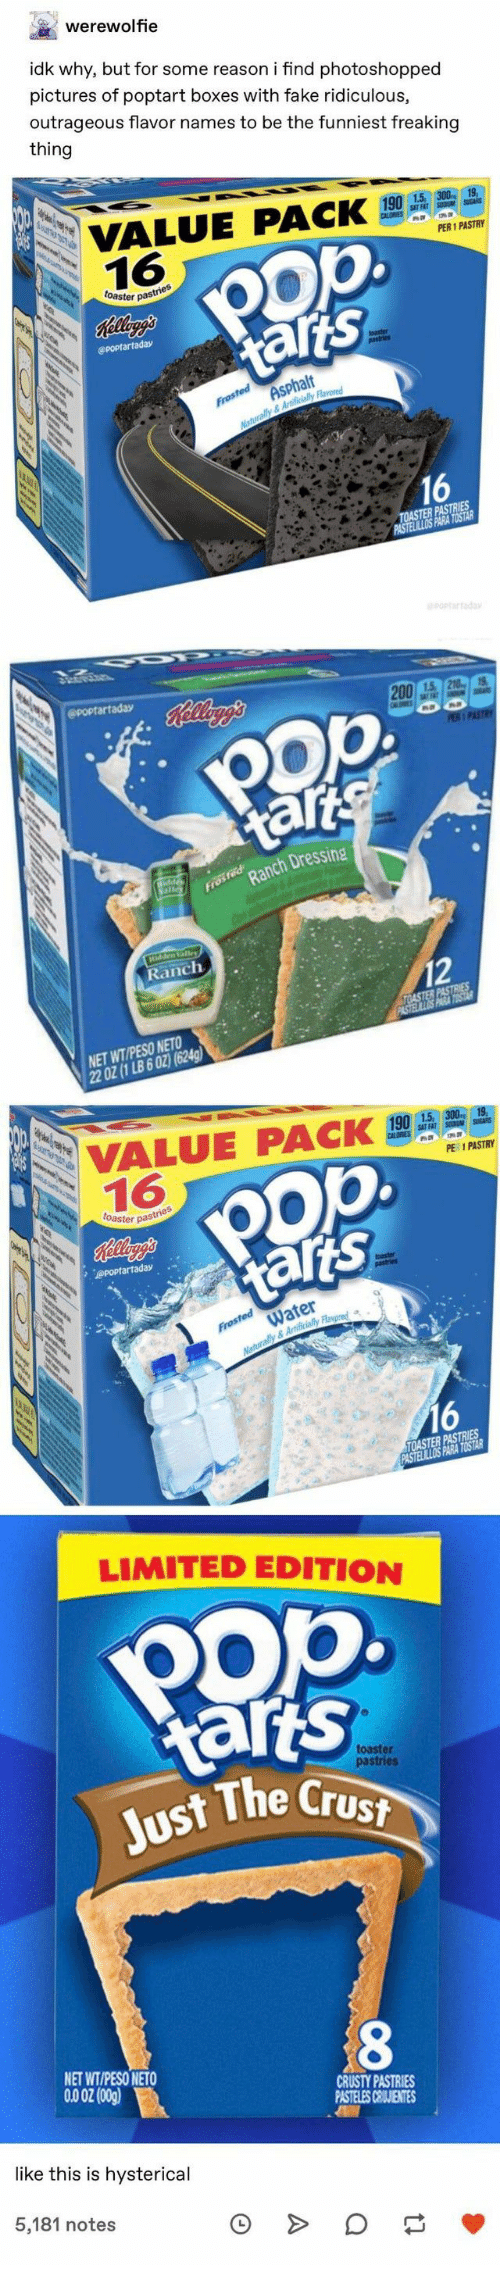 Fake, Pop, and Limited: werewolfie  idk why, but for some reason i find photoshopped  pictures of poptart boxes with fake ridiculous,  outrageous flavor names to be the funniest freaking  thing  VALUE PACK  16  190 1.5 300 19  CLIES T FAT SOM SUEARS  .  PER 1 PASTRY  toaster pastries  Kllyg's  @POPtartaday  talis  AsPhalt  Frosted  Maturally& Artilicially Flavod  16  TOASTER PASTRIES  PASTELILLOS PARA TOSTAR  POPtartaday  OPOptartaday  Rellegg's  200 1.5 210 1  CA  PER 1 PASTRY  tarts  Hidd  Salle  Ranch Dressing  Frosted  Nay&A  Con sa s  Hidden Valley  Ranch  12  TOASTER PASTRIES  PASTELLOS PRA TST  NET WT/PESO NETO  22 OZ (1 LB 6 02)(624g)  VALUE PACK  16  190 1.5 300  CALORES SAT FA  19  PER 1 PASTRY  oaster pastries  ts  Releag's  OPOptartaday  tars  toaster  Water  Frosted  Naturally&Artificialily Flavred  16  TOASTER PASTRIES  PASTELLLOS PARA TOSTAR  LIMITED EDITION  POp  tarts  Just The Crust  toaster  pastries  8  NET WT/PESO NETO  CRUSTY PASTRIES  PASTELES CRUUIENTES  like this is hysterical  5,181 notes  O  see  О